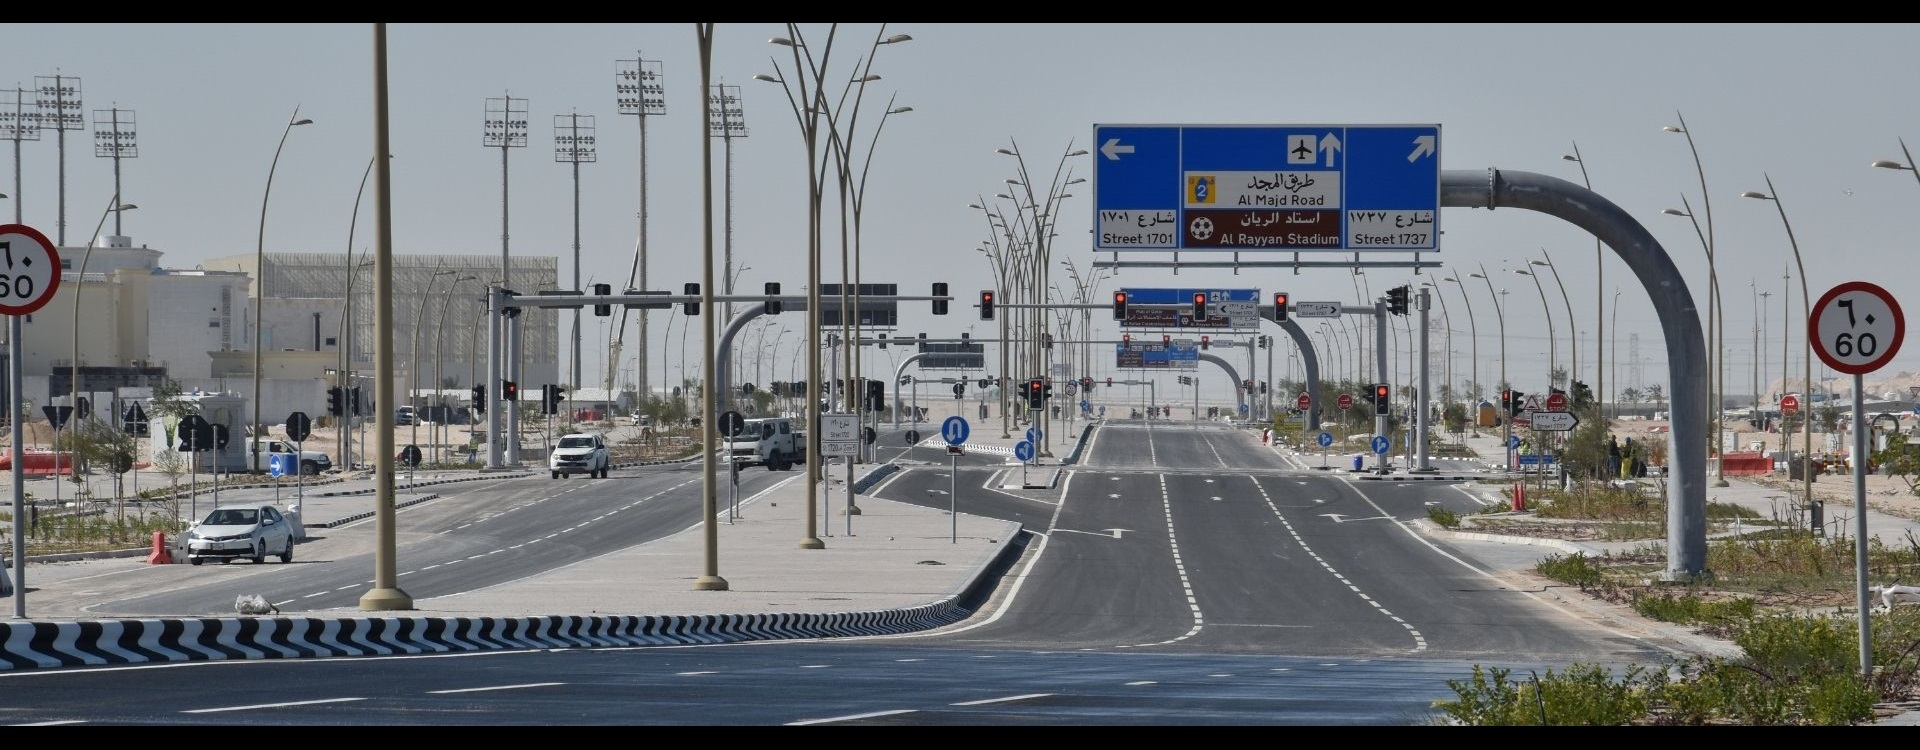 bnr-Qatar-Local-Roads-and-Drainage-Program-Project-Delivery